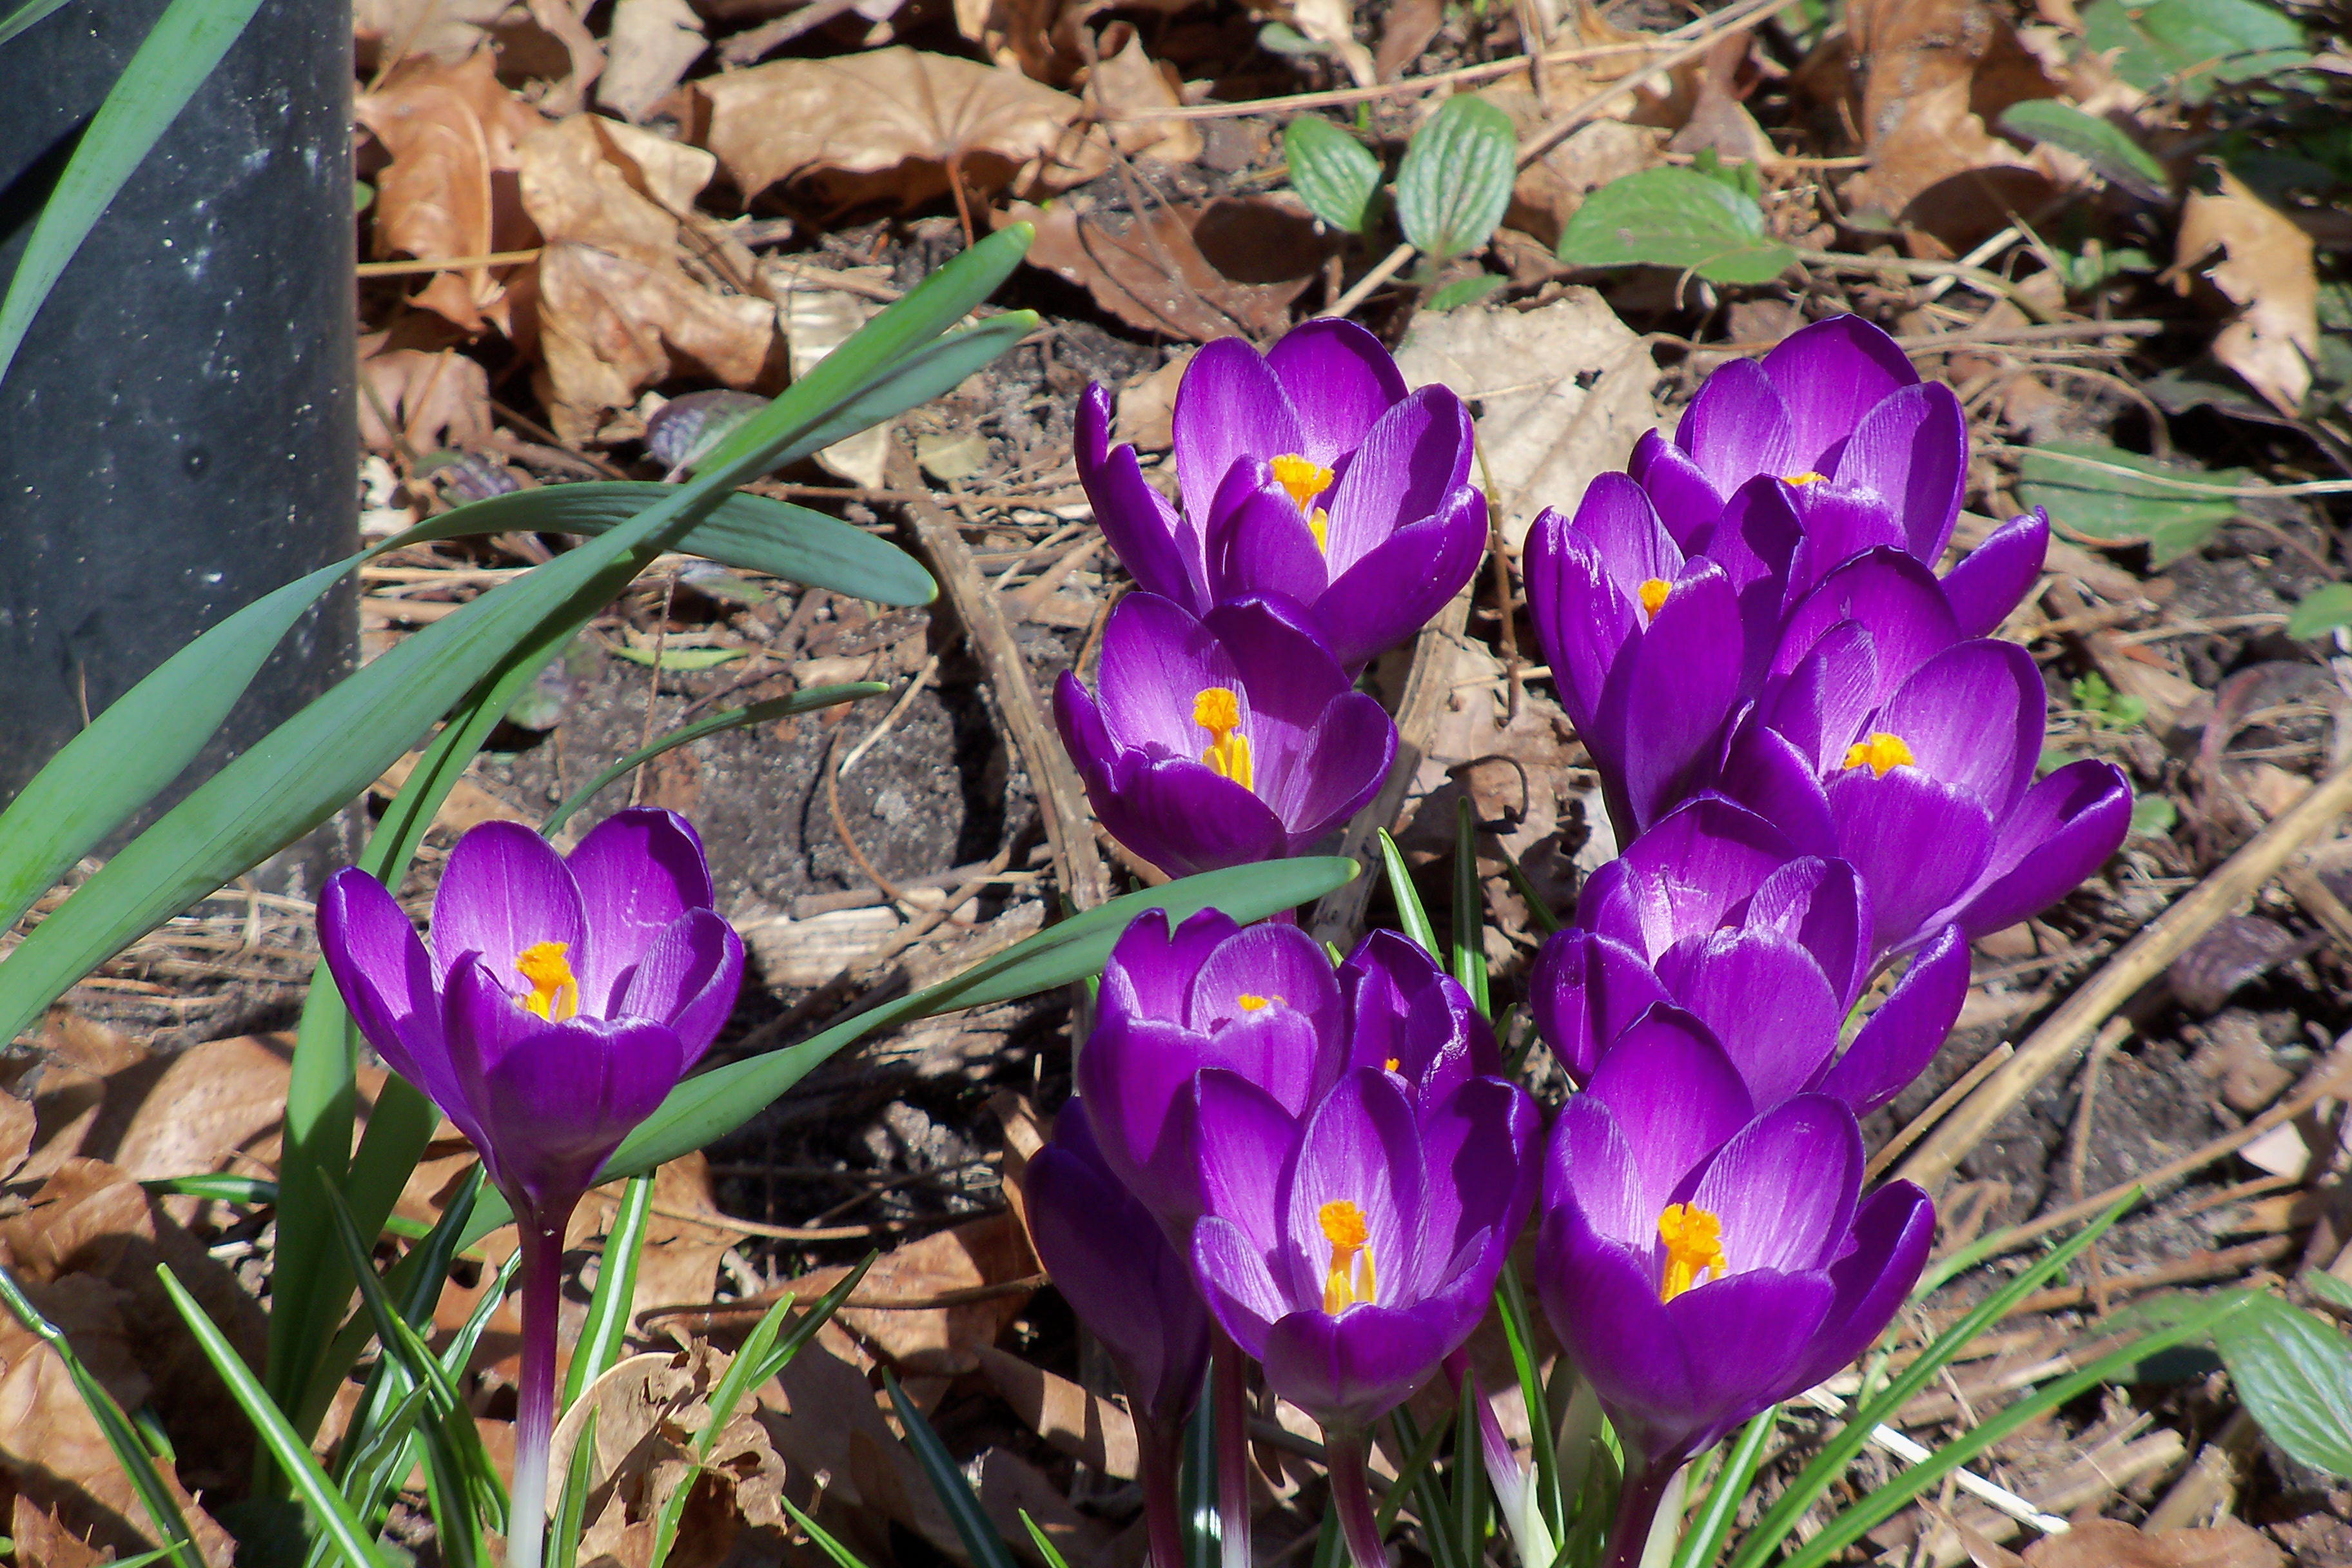 A bed of purple tulips with their golden yellow pistils contrasting the leaves colors fading into a white inner leaf.